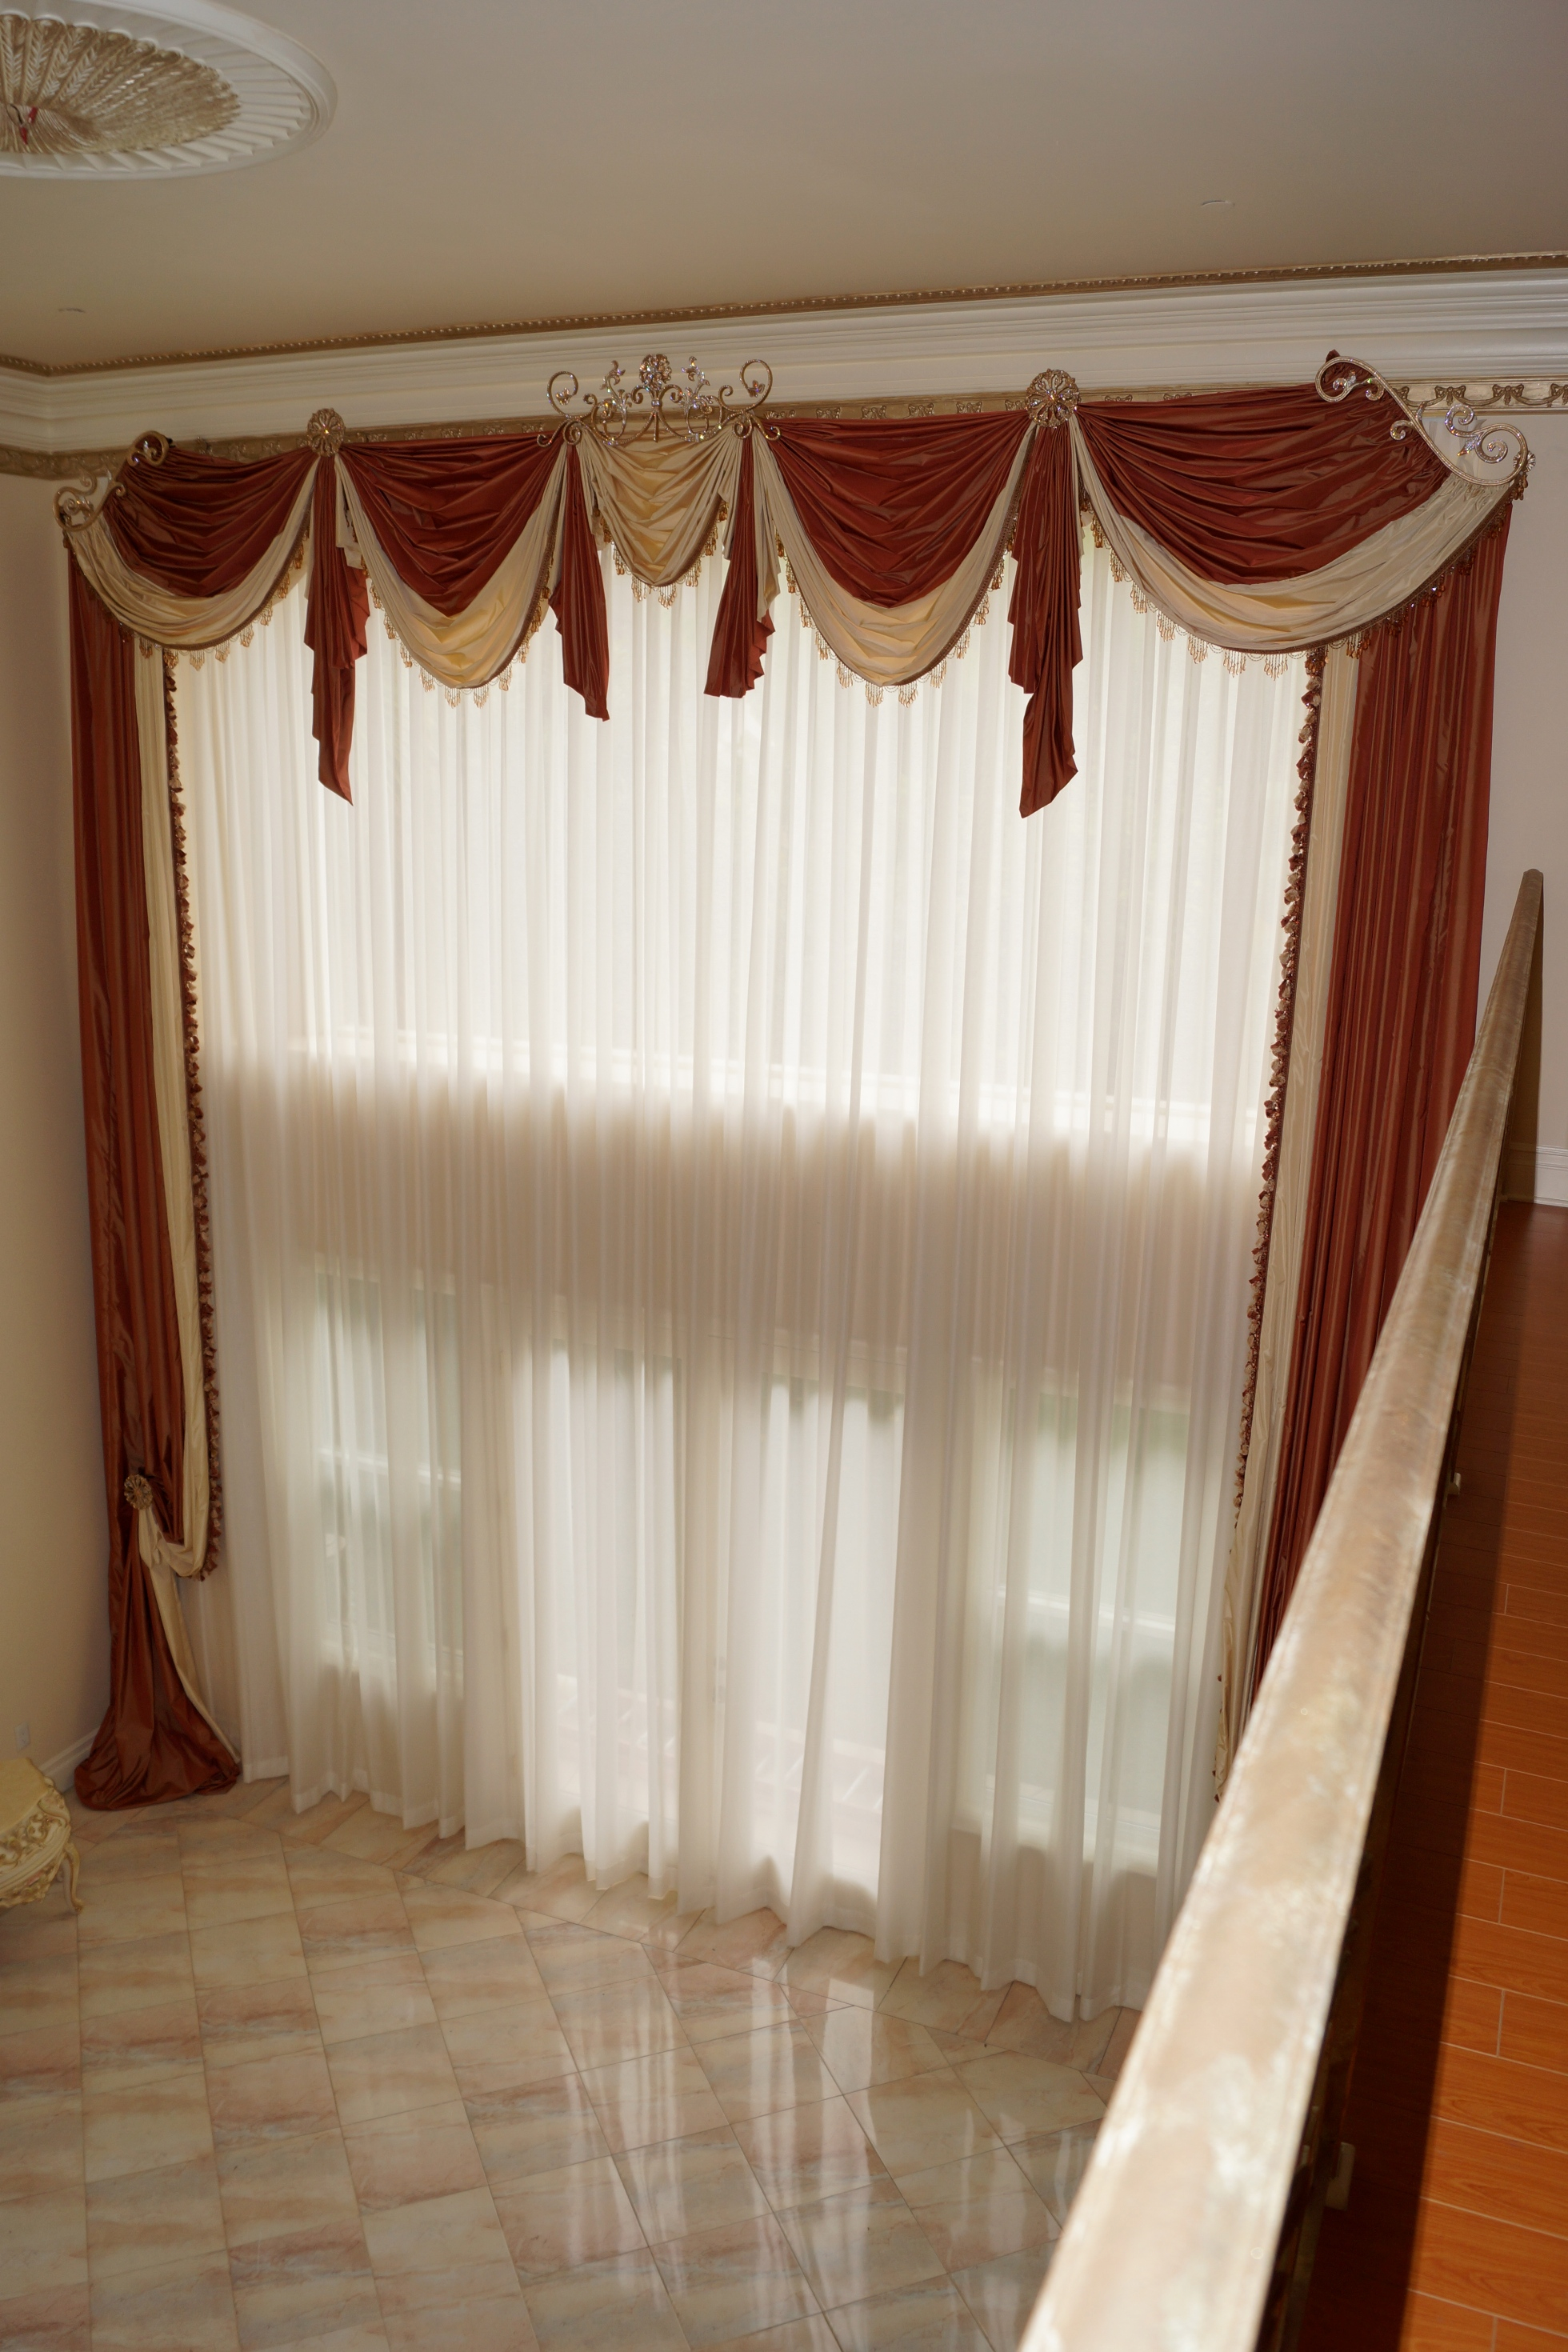 Galaxy Design Announces Exquisite Custom Curtains And